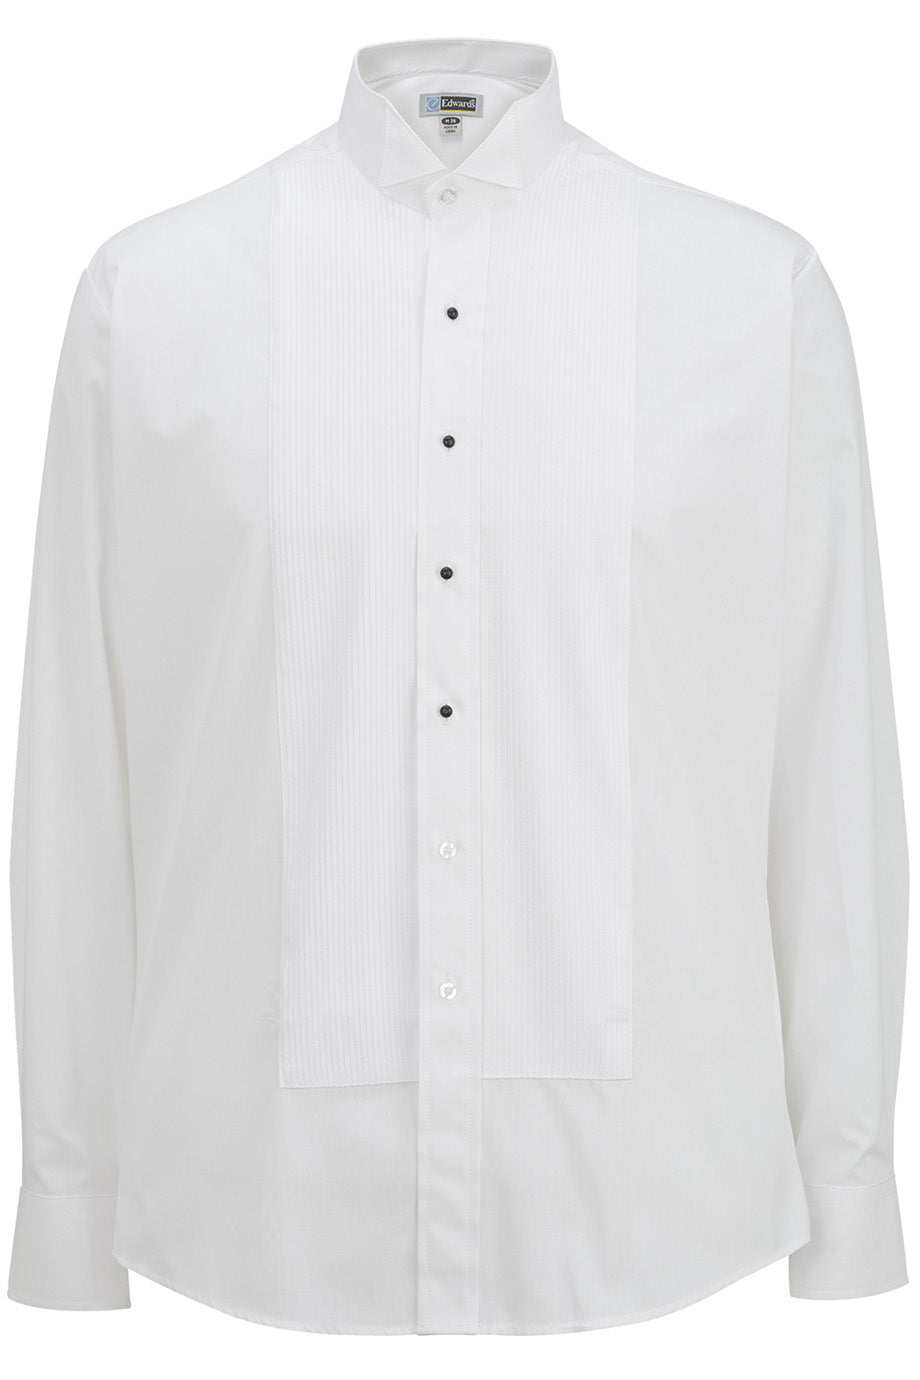 White Edwards Mens Wing Collar Tuxedo Shirt